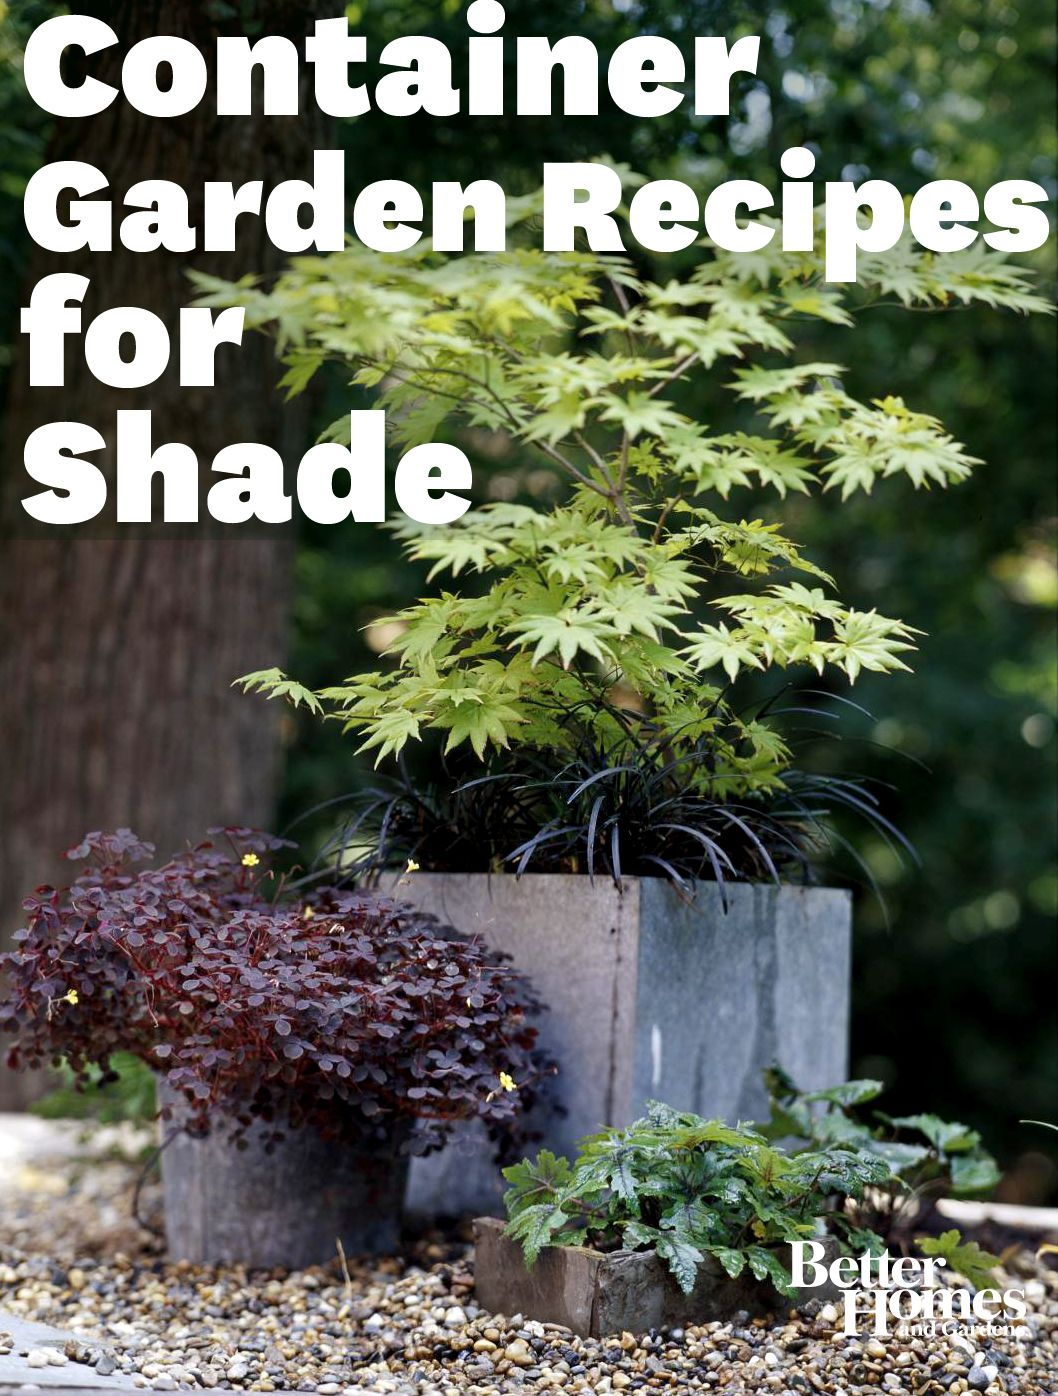 Enjoy Gardening Without The Breaking Your Back With This: Pin By Malina Dede On Gardening For My Soul